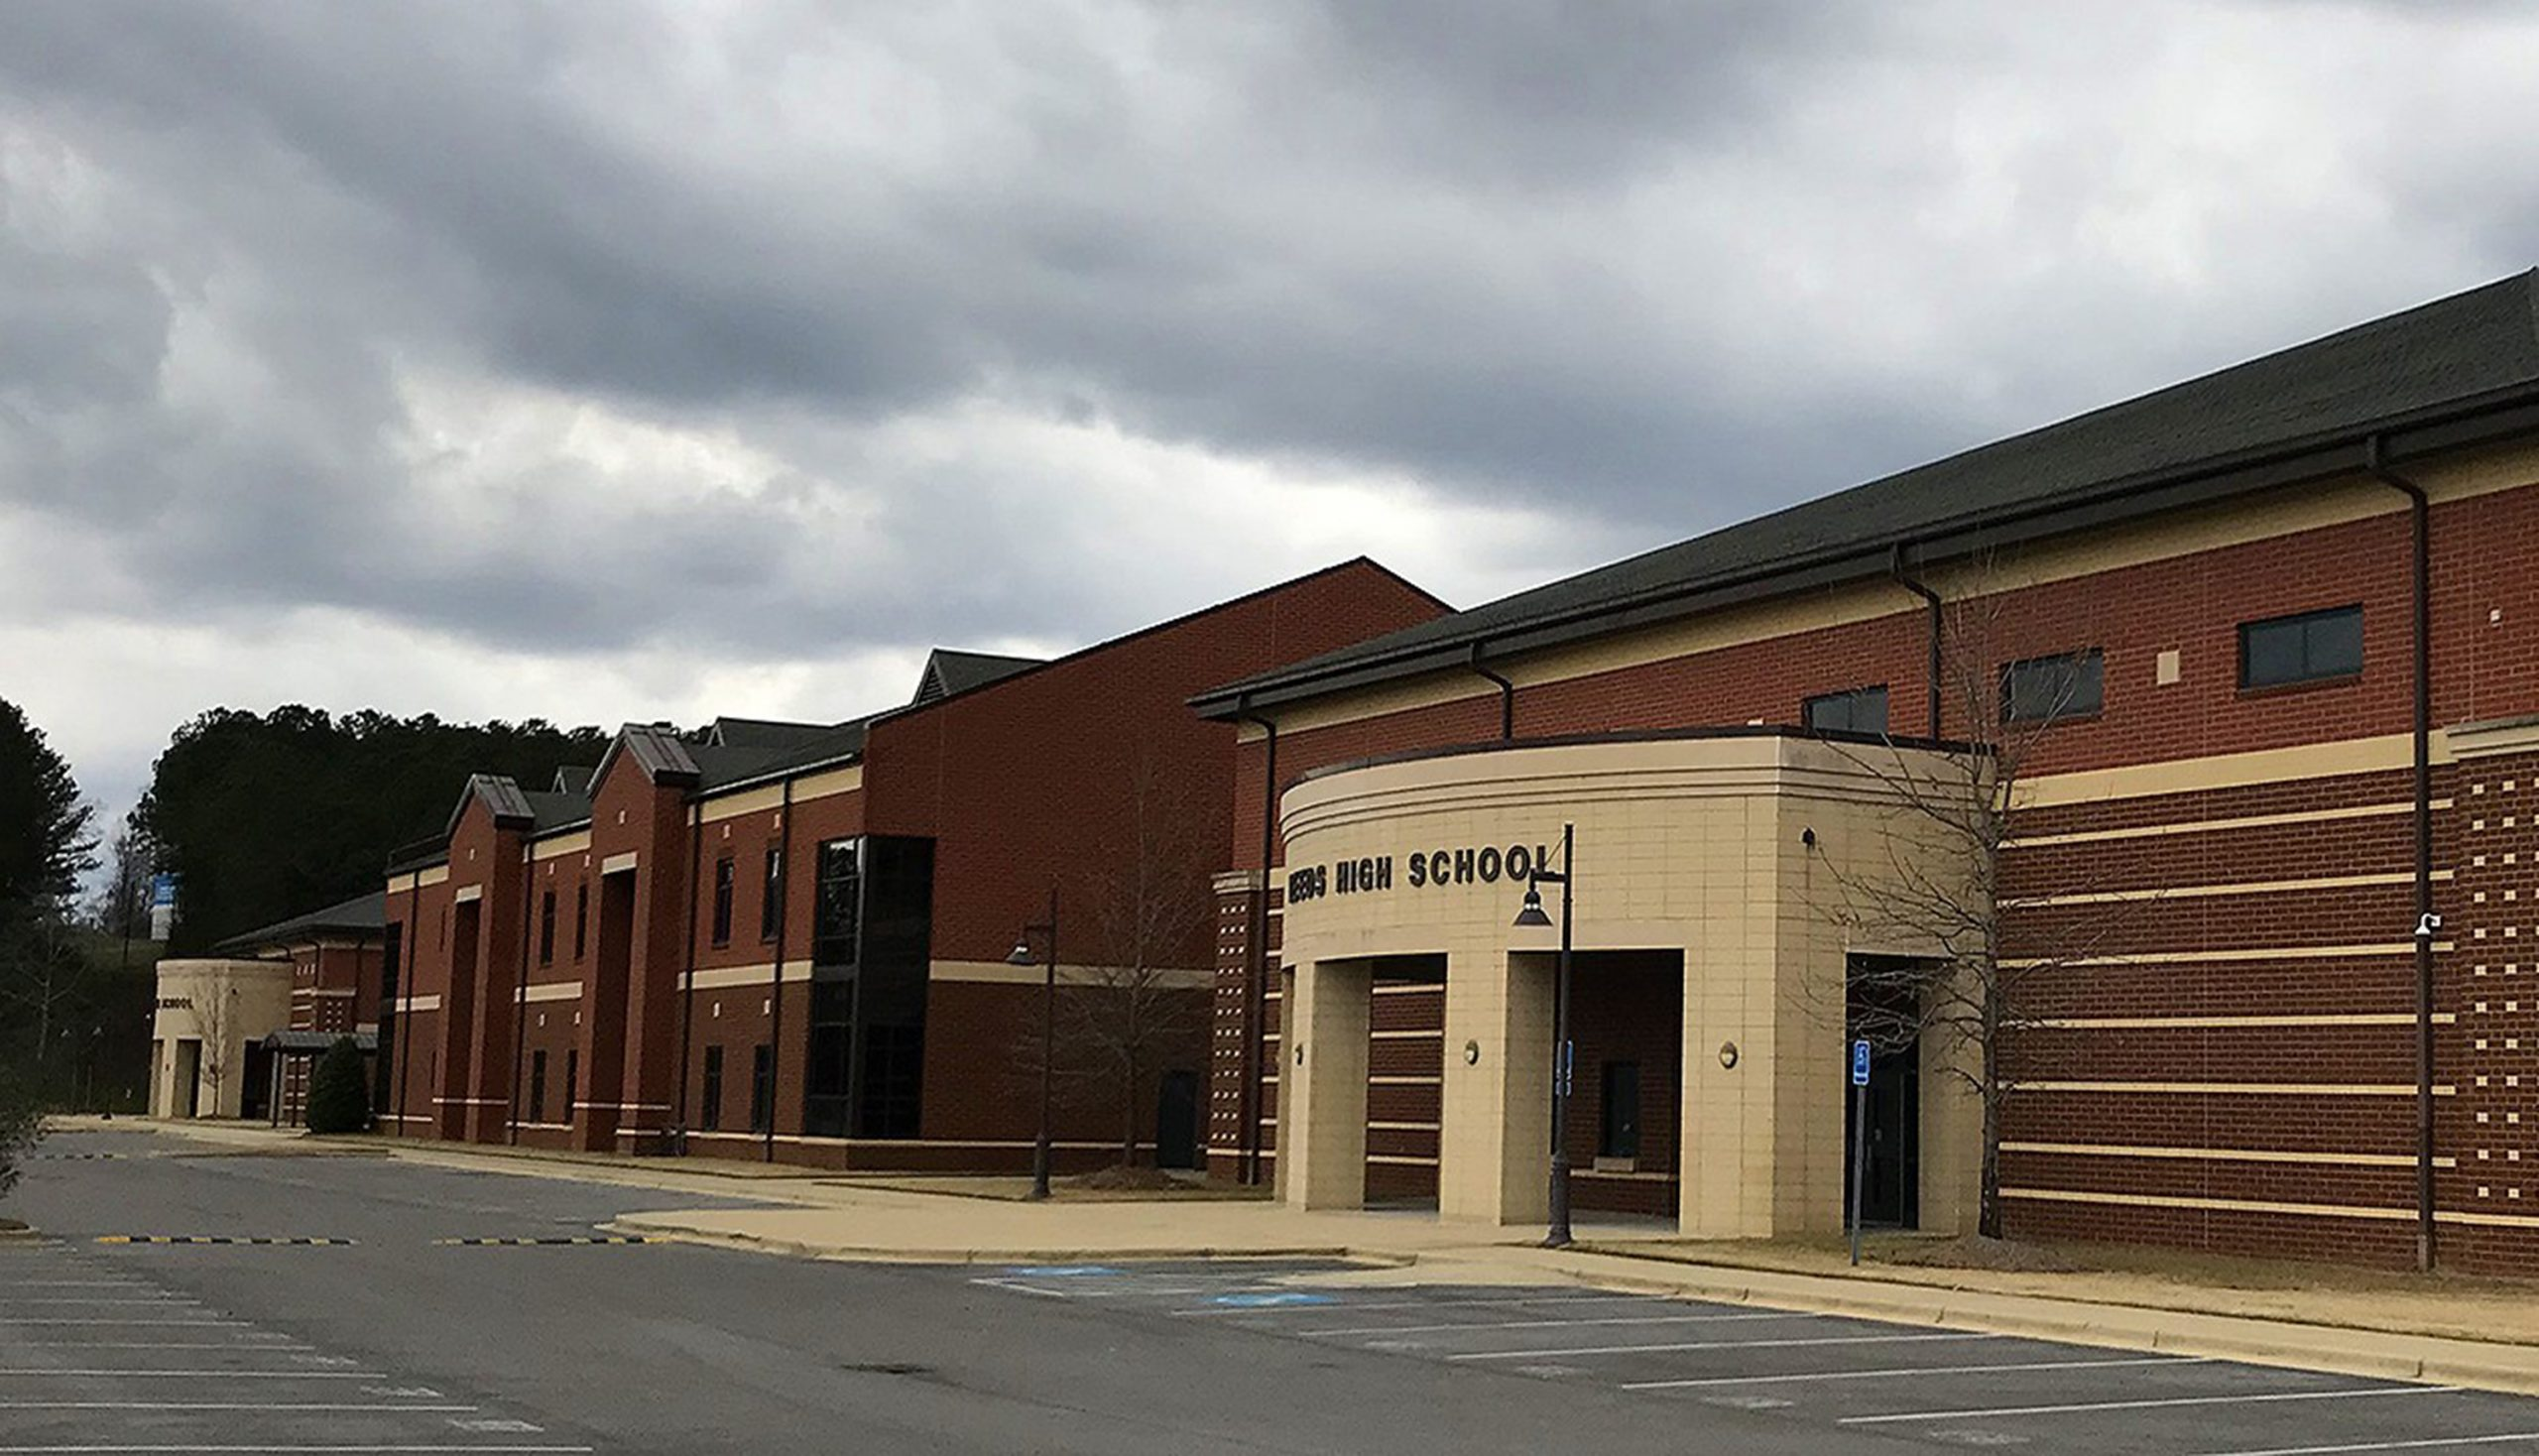 Leeds City Schools reopening this week, grades 6 - 12 will be staggered